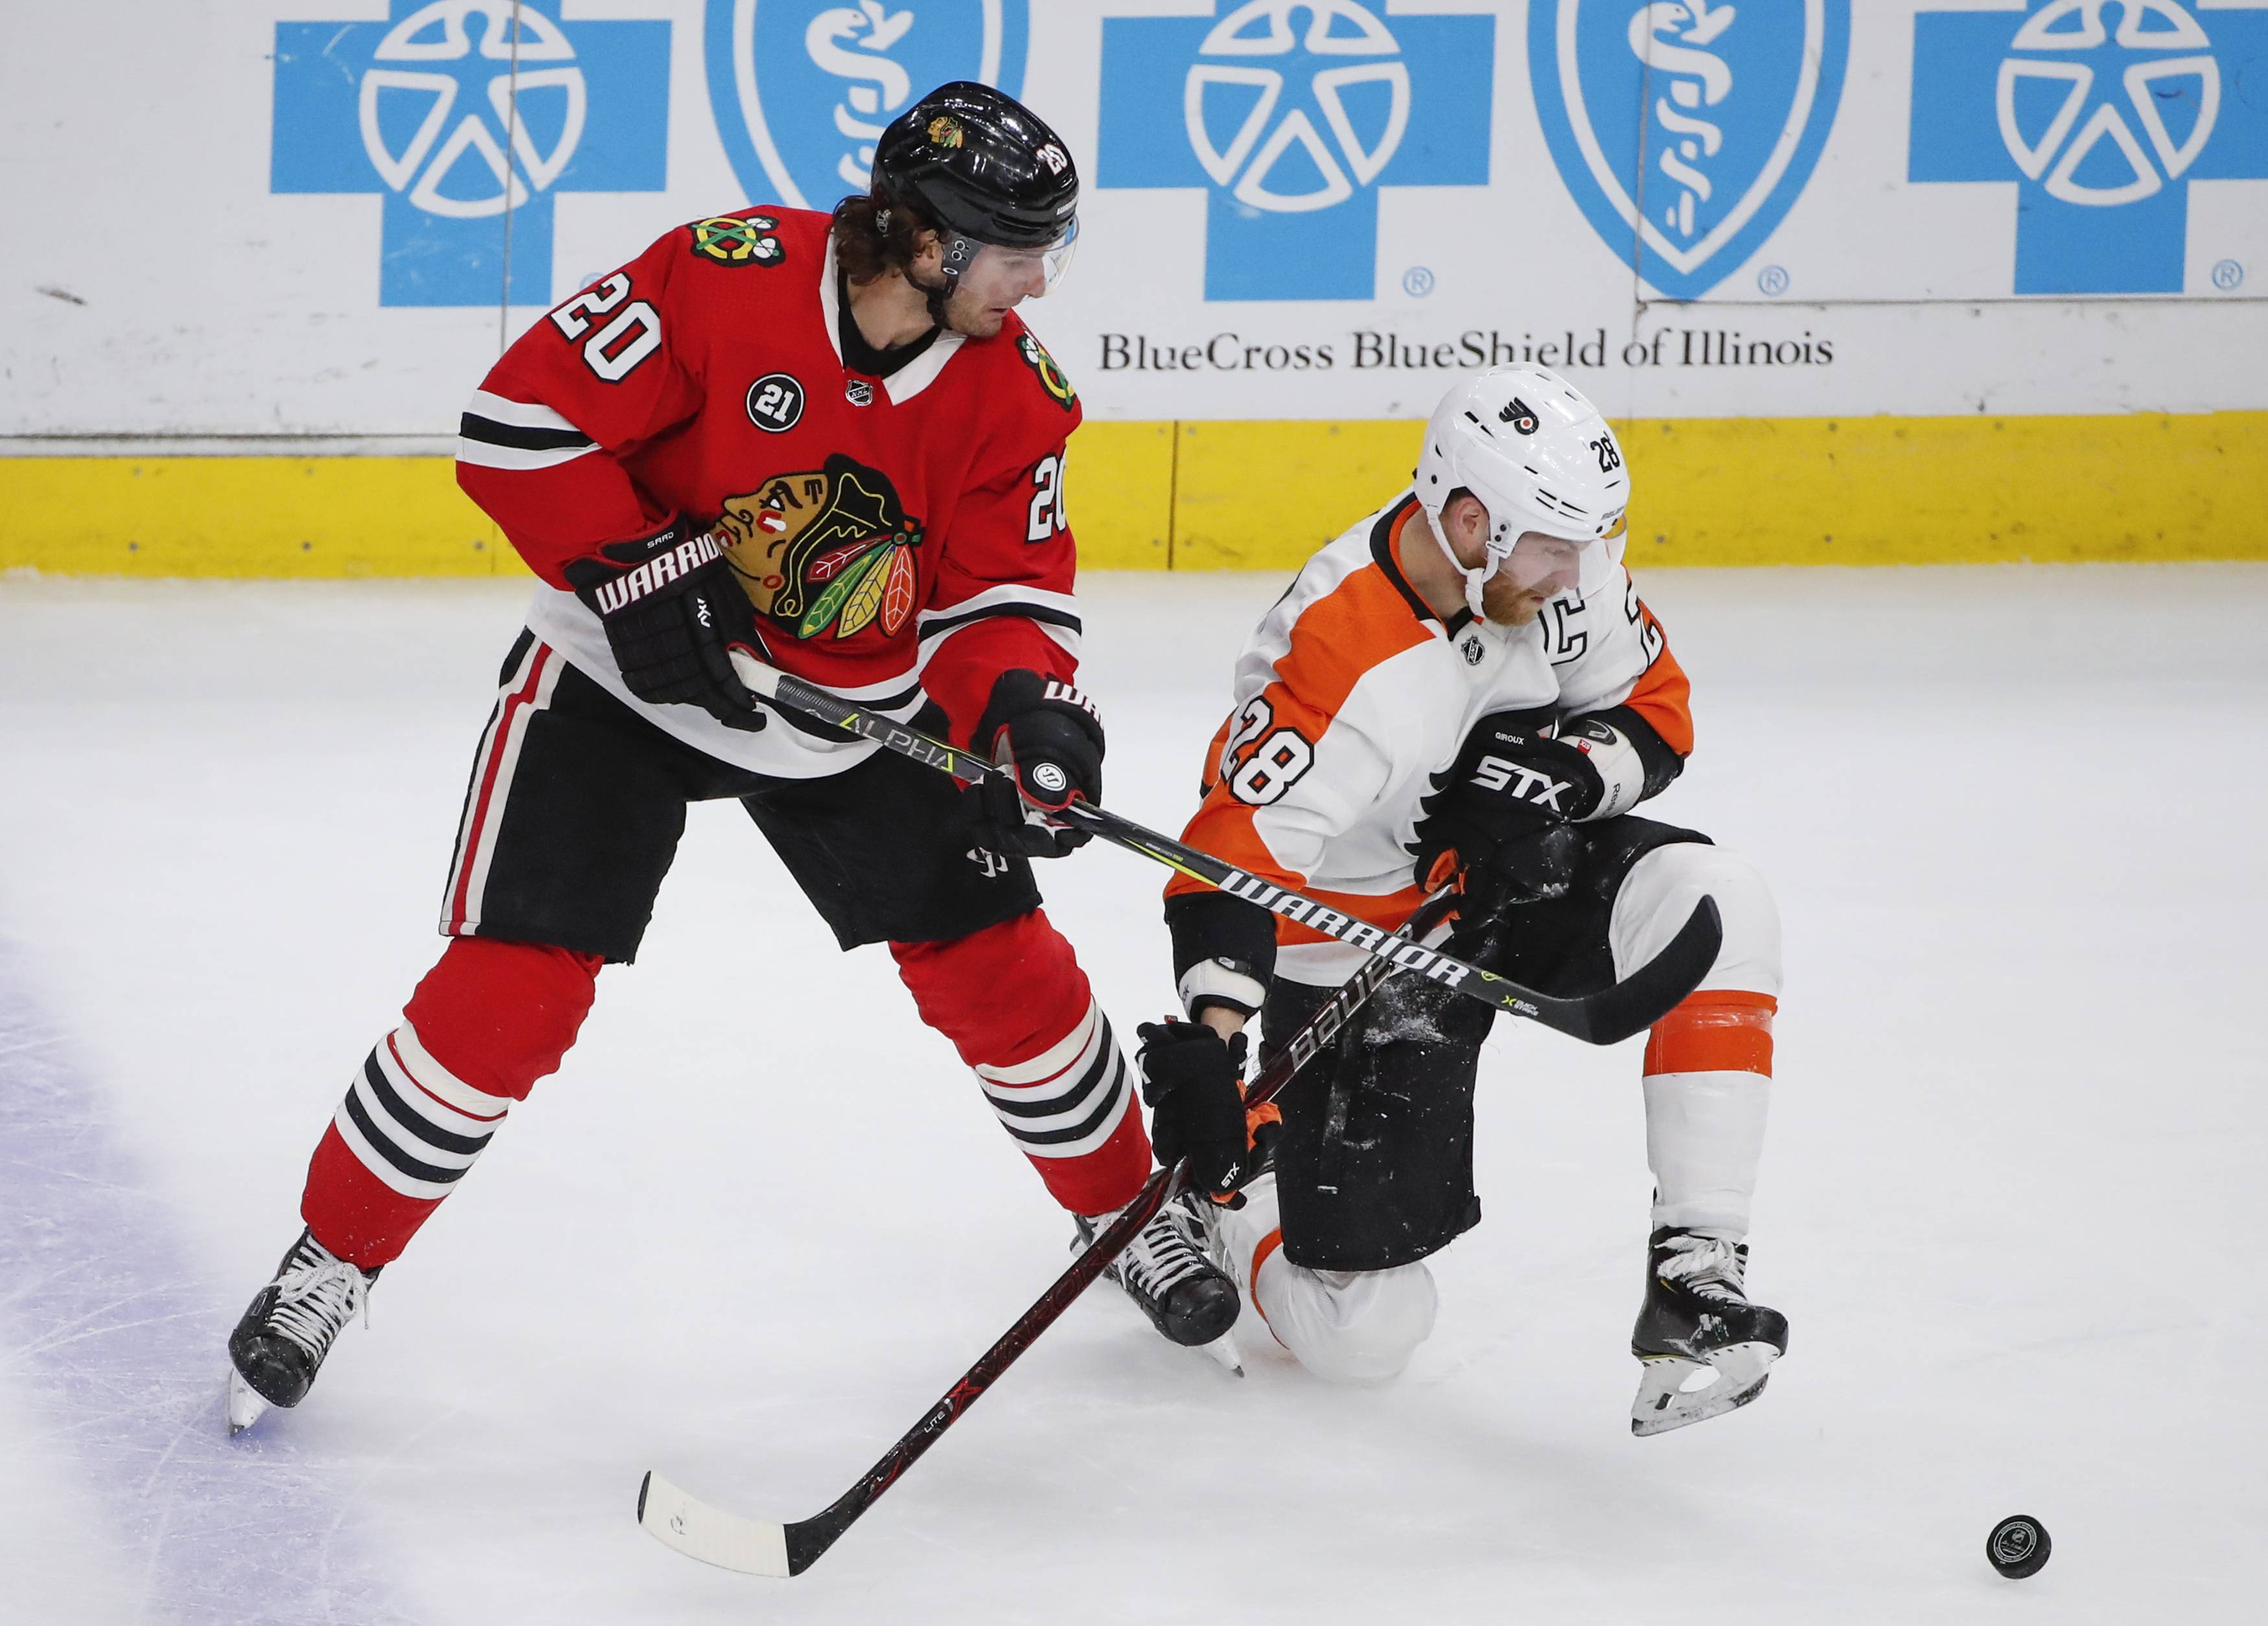 Chicago Blackhawks left wing Brandon Saad (20) battles for the puck with Philadelphia Flyers center Claude Giroux (28) during the second period of an NHL hockey game Thursday, March 21, 2019, in Chicago.